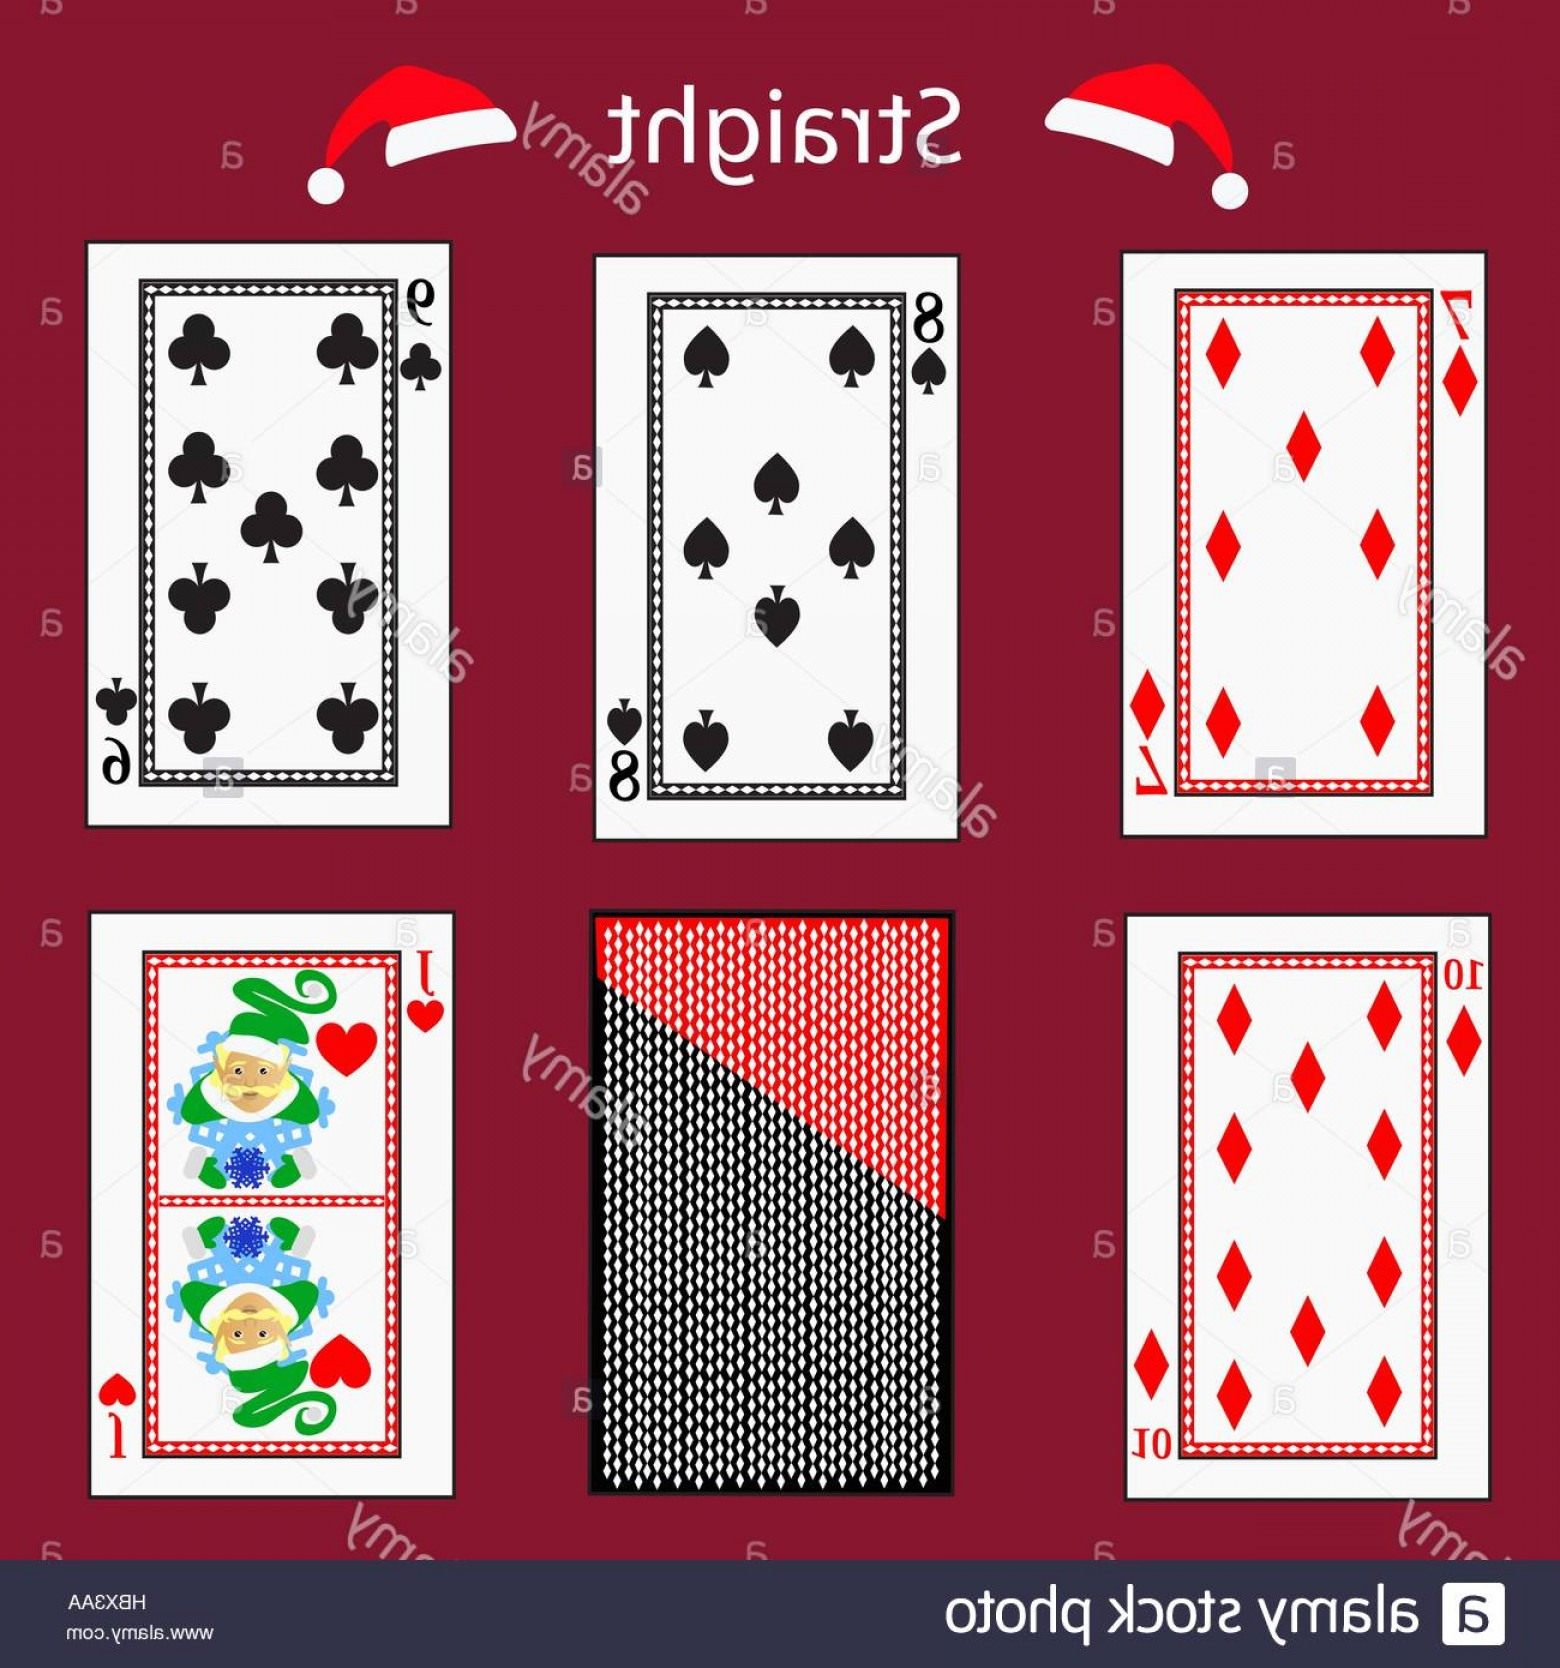 10 Playing Card Vector: Stock Photo Straight Playing Card Poker Combination Vector Illustration Eps